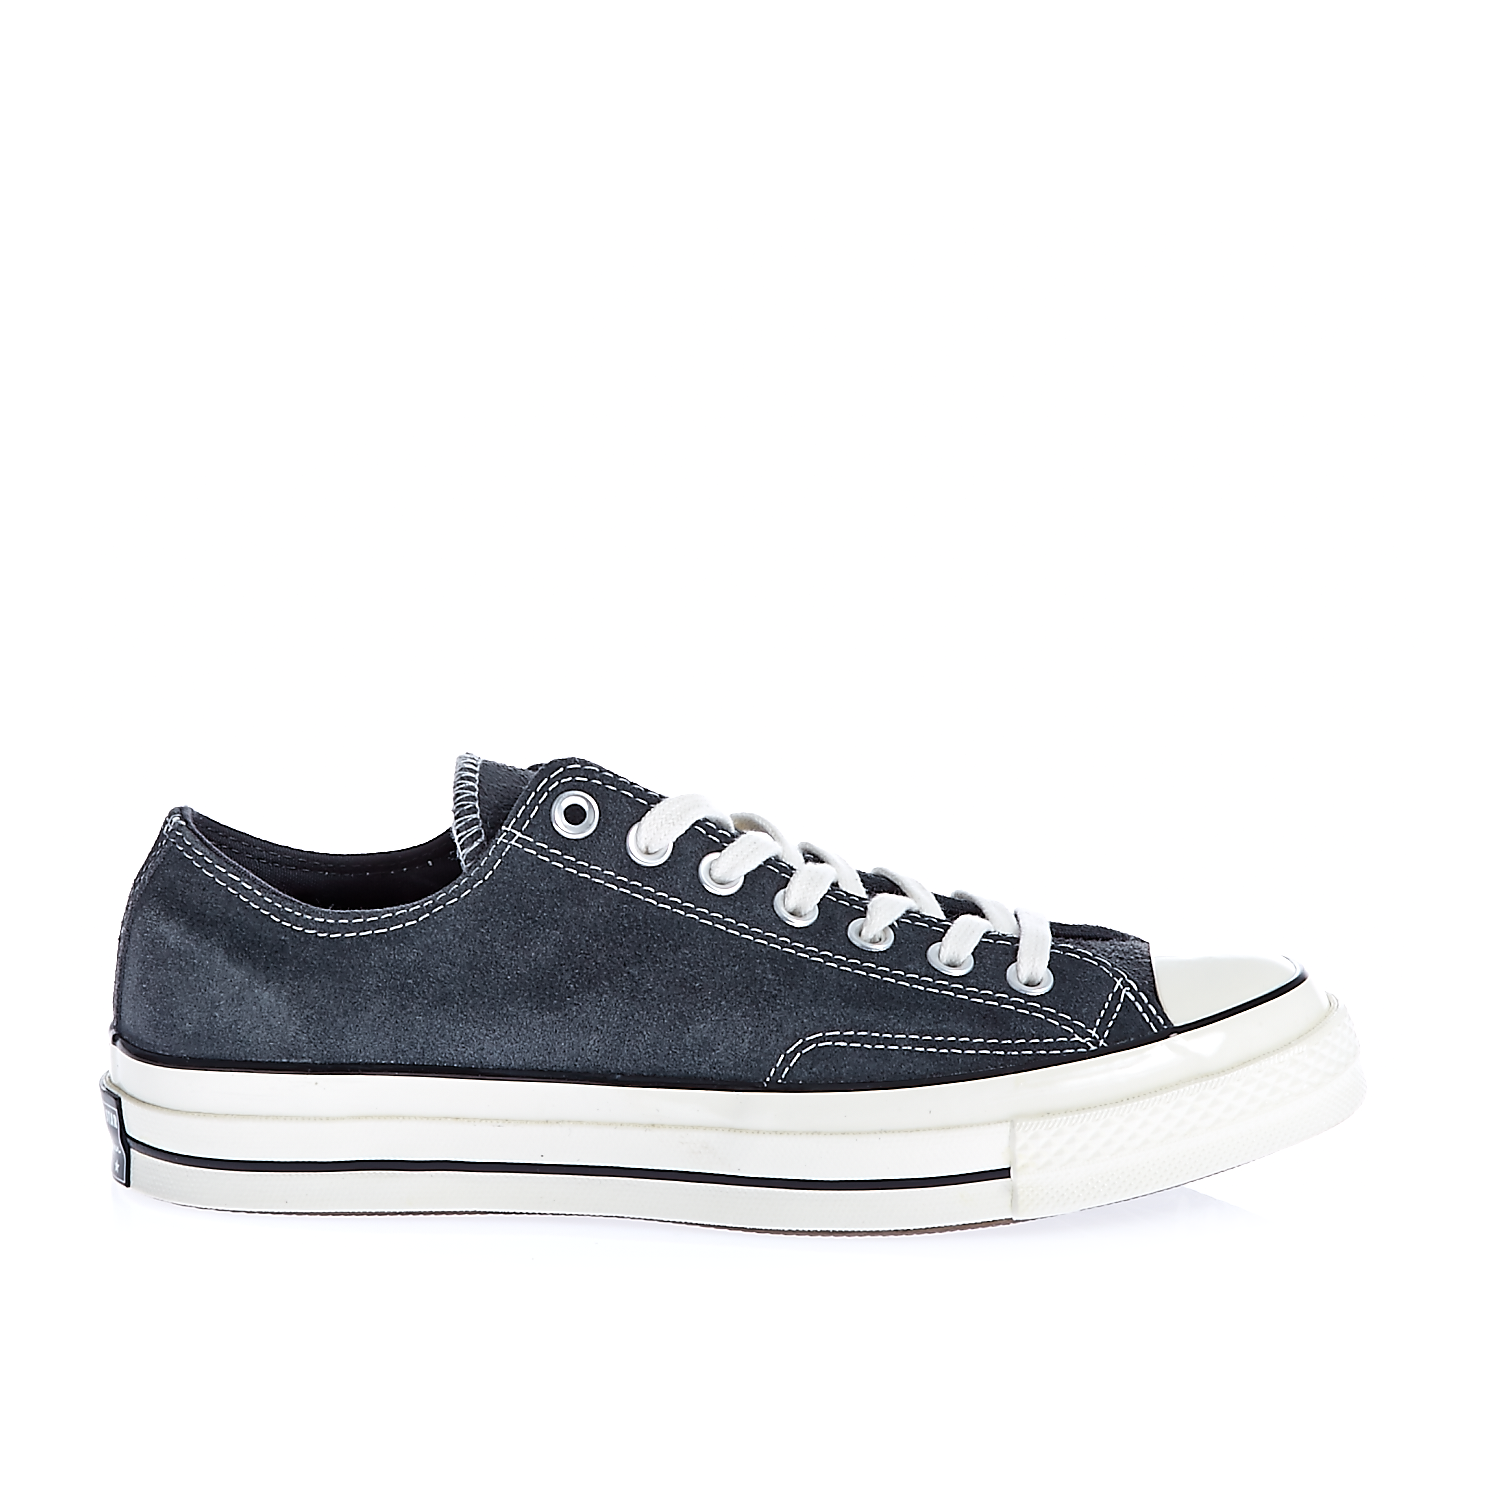 CONVERSE – Unisex παπούτσια Chuck Taylor All Star '70 Ox ανθρακί